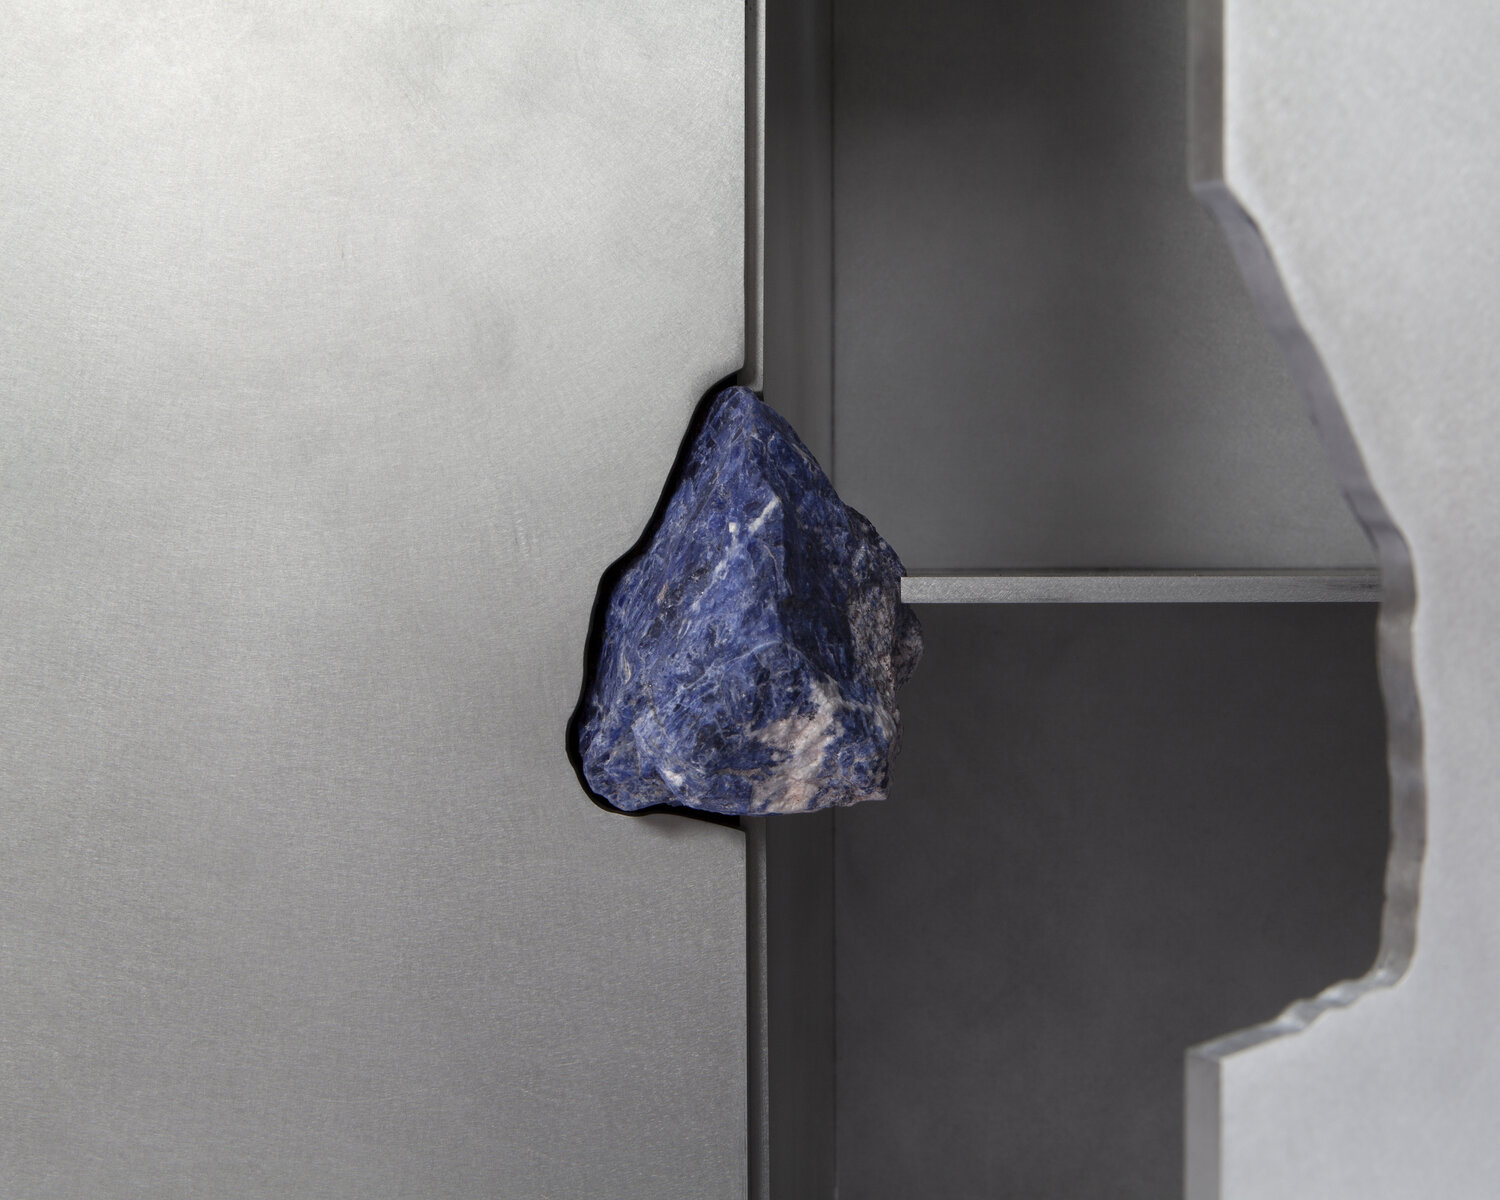 PierreDeValck CabinetwithstoneLapisLazuli03websiteadjust - start to collect - art design